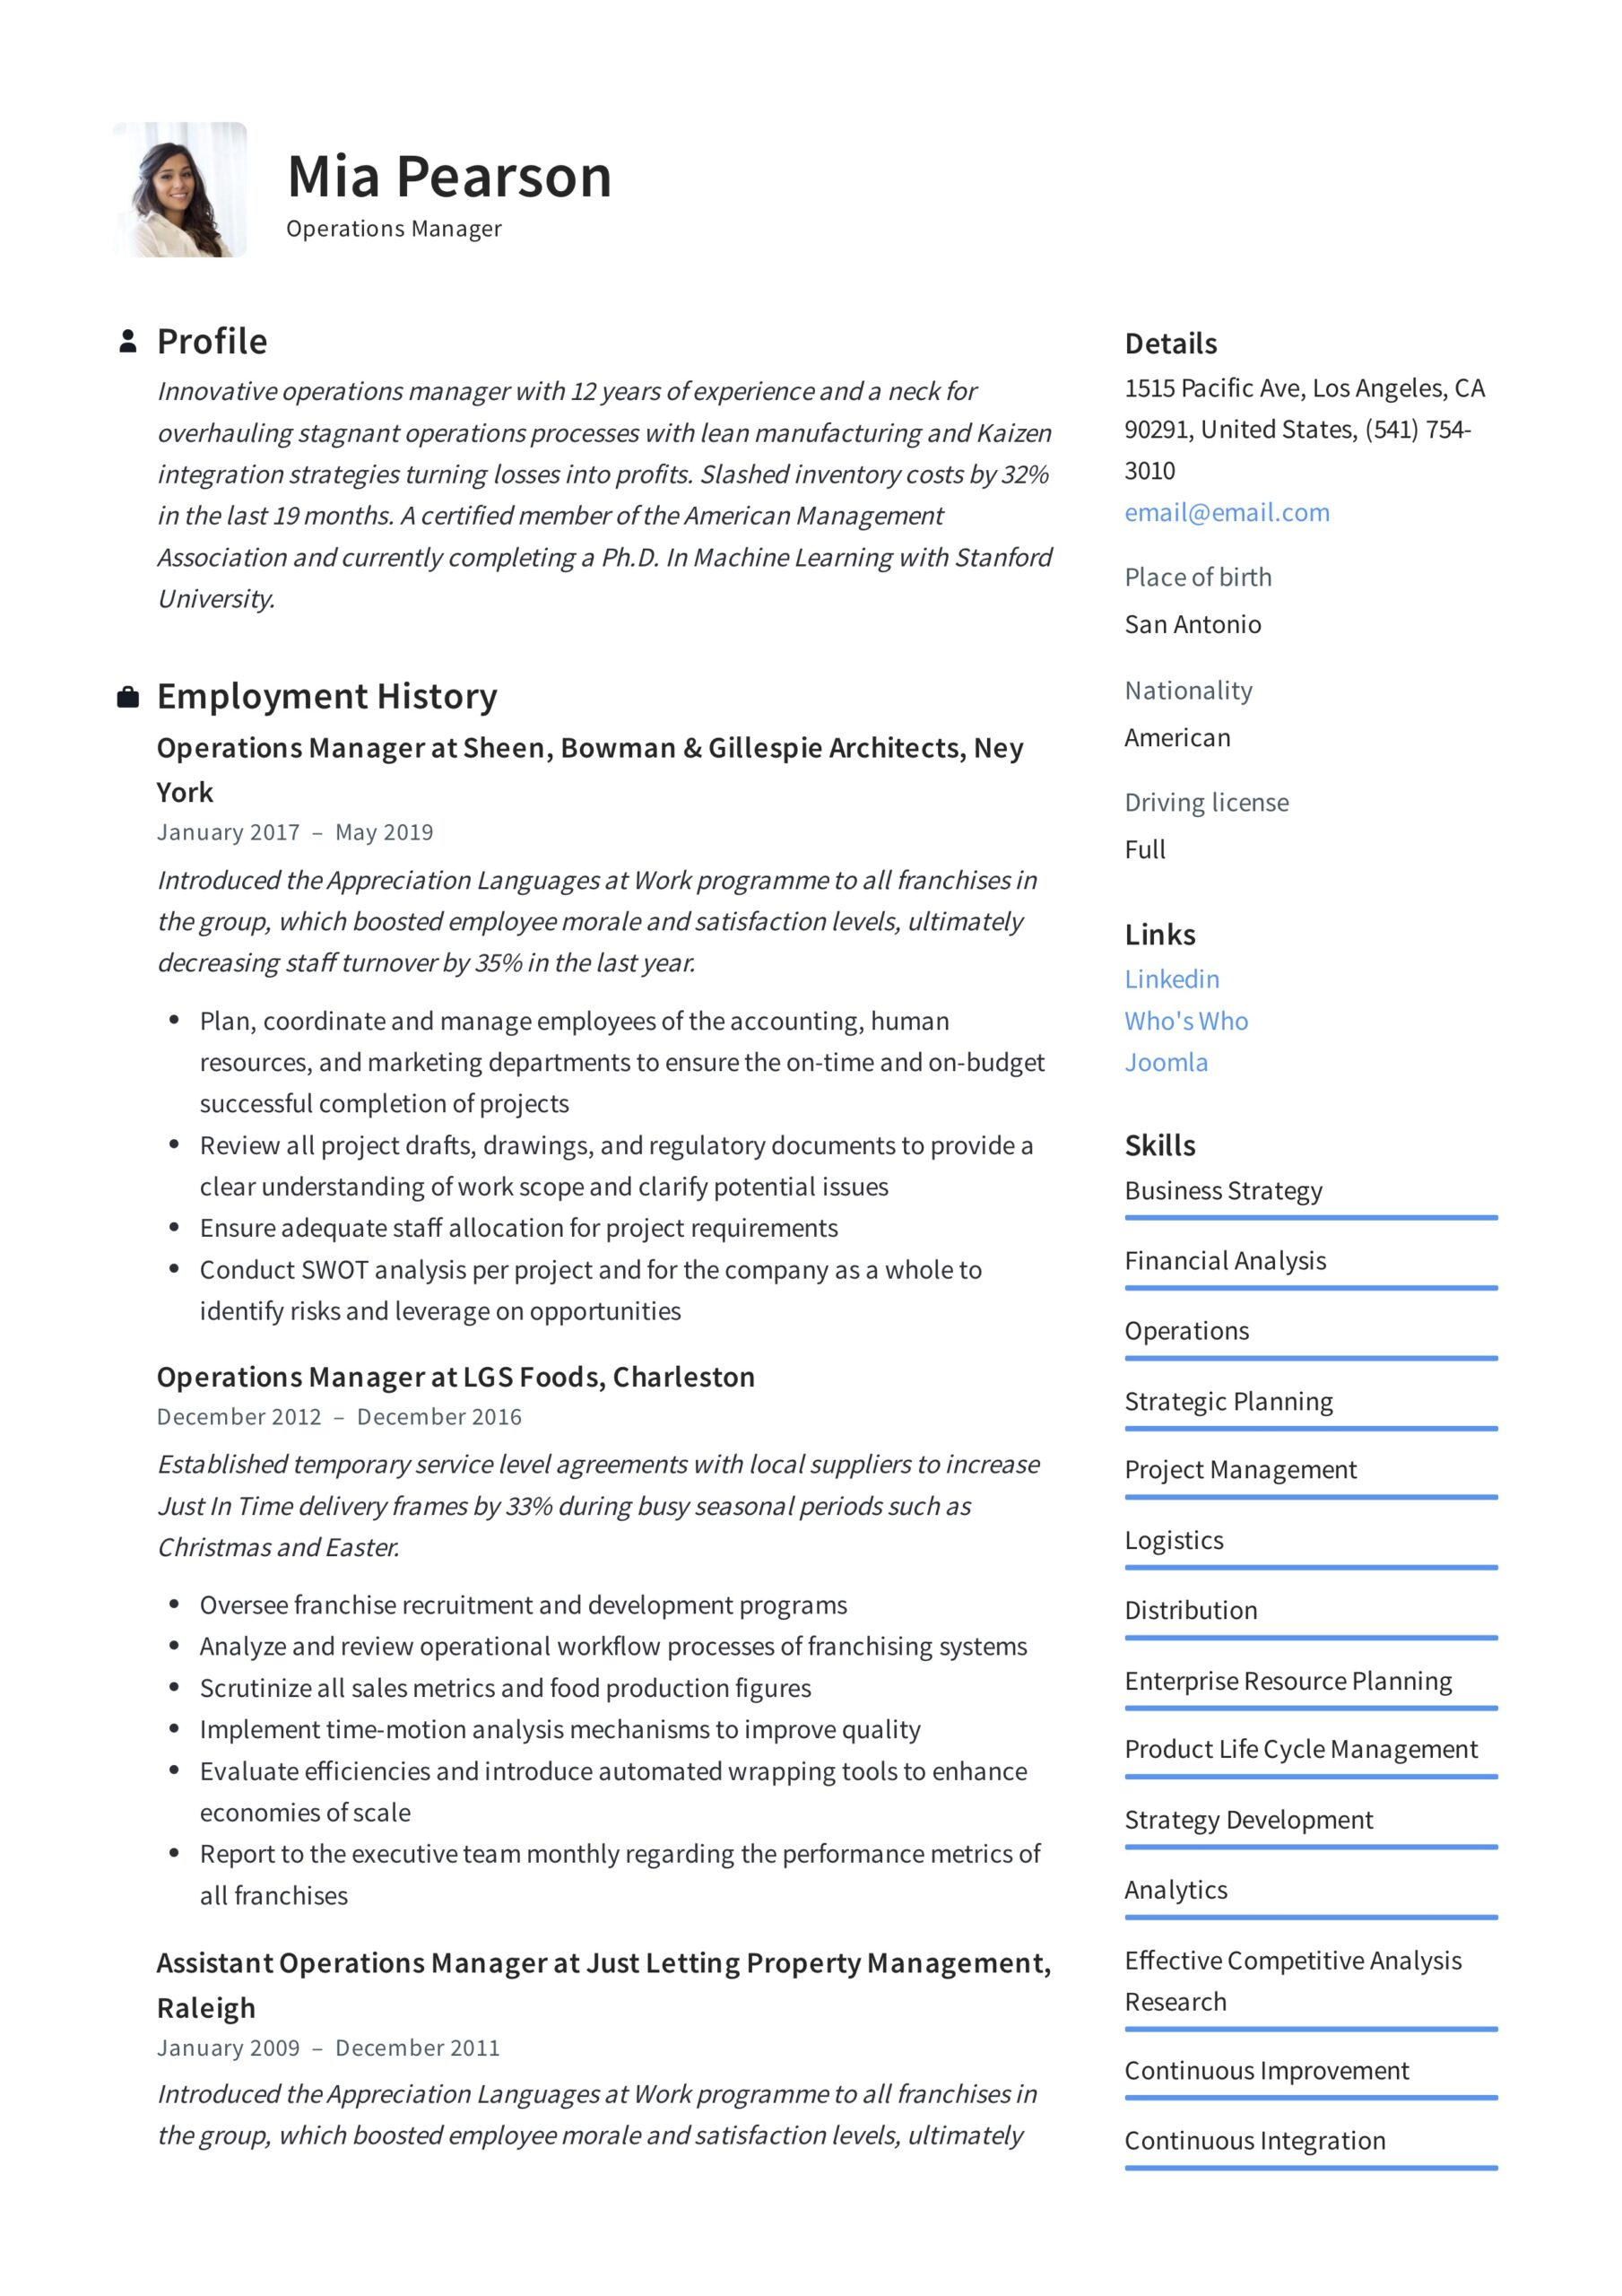 operations manager resume writing guide examples pdf summary for example junior developer Resume Operations Manager Summary For Resume